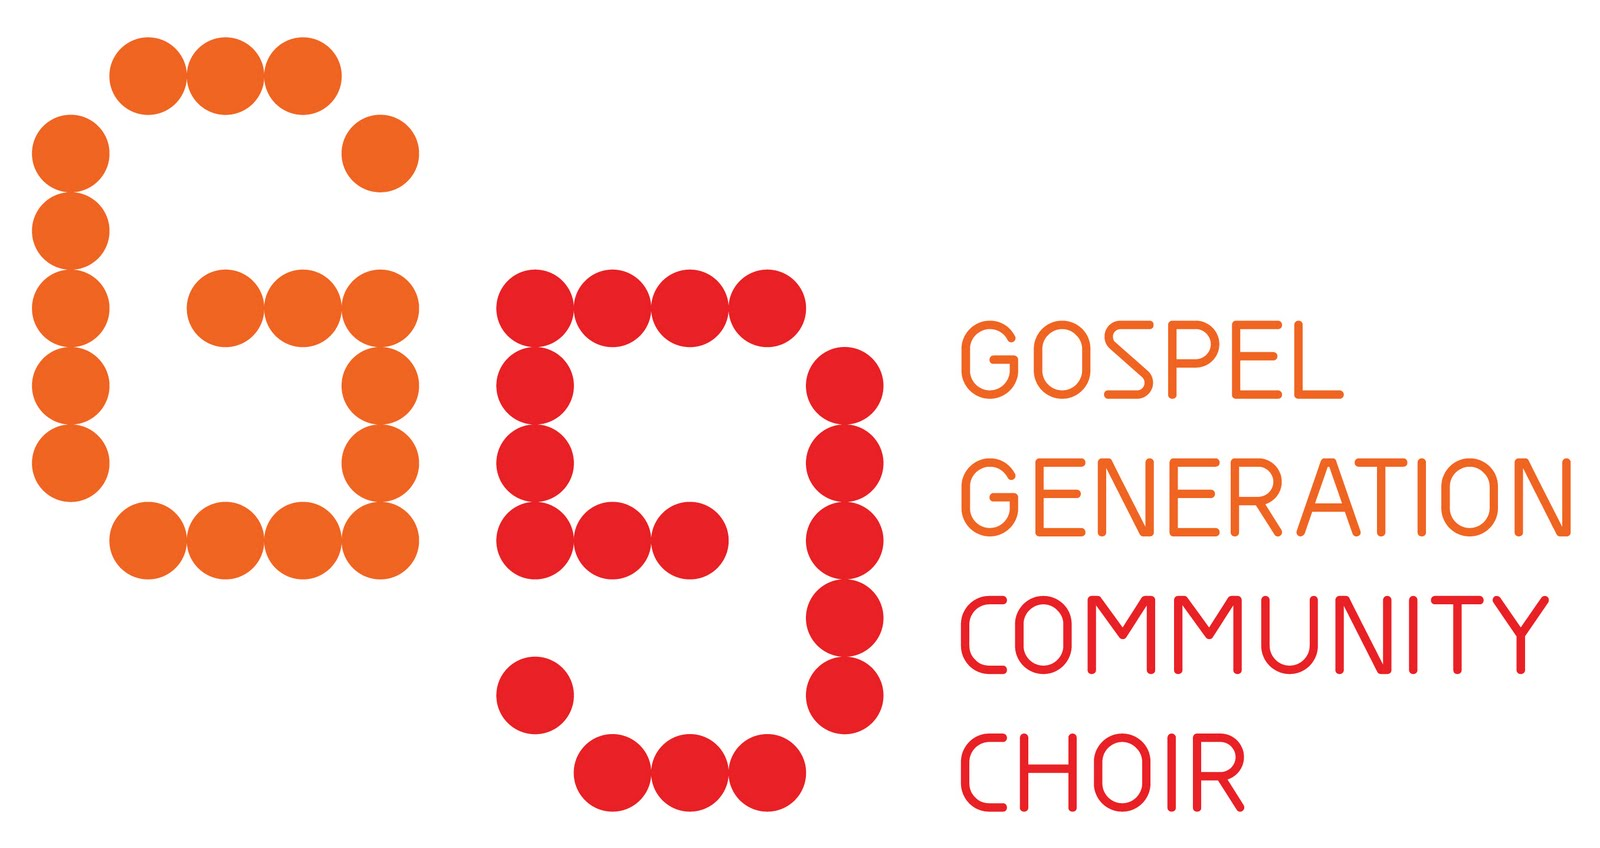 Gospel Generation Community Choir